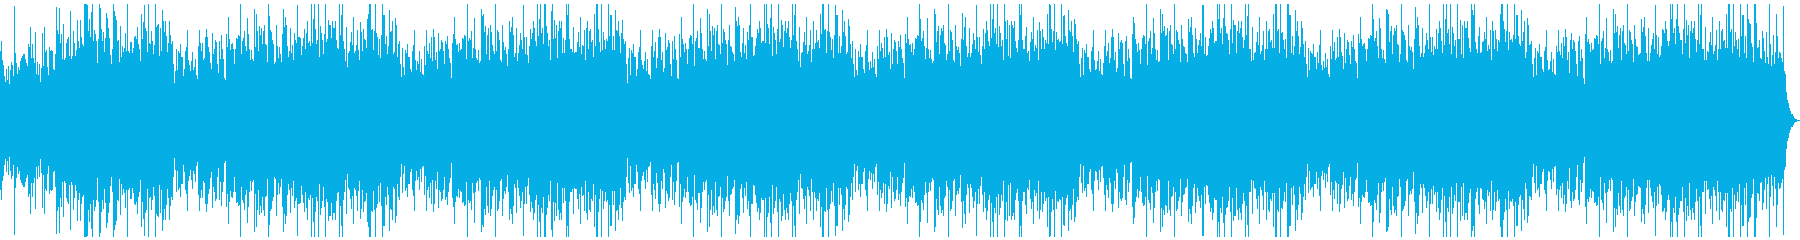 Quiet, serious, commentary, ambi, 10 minutes's reproduced waveform